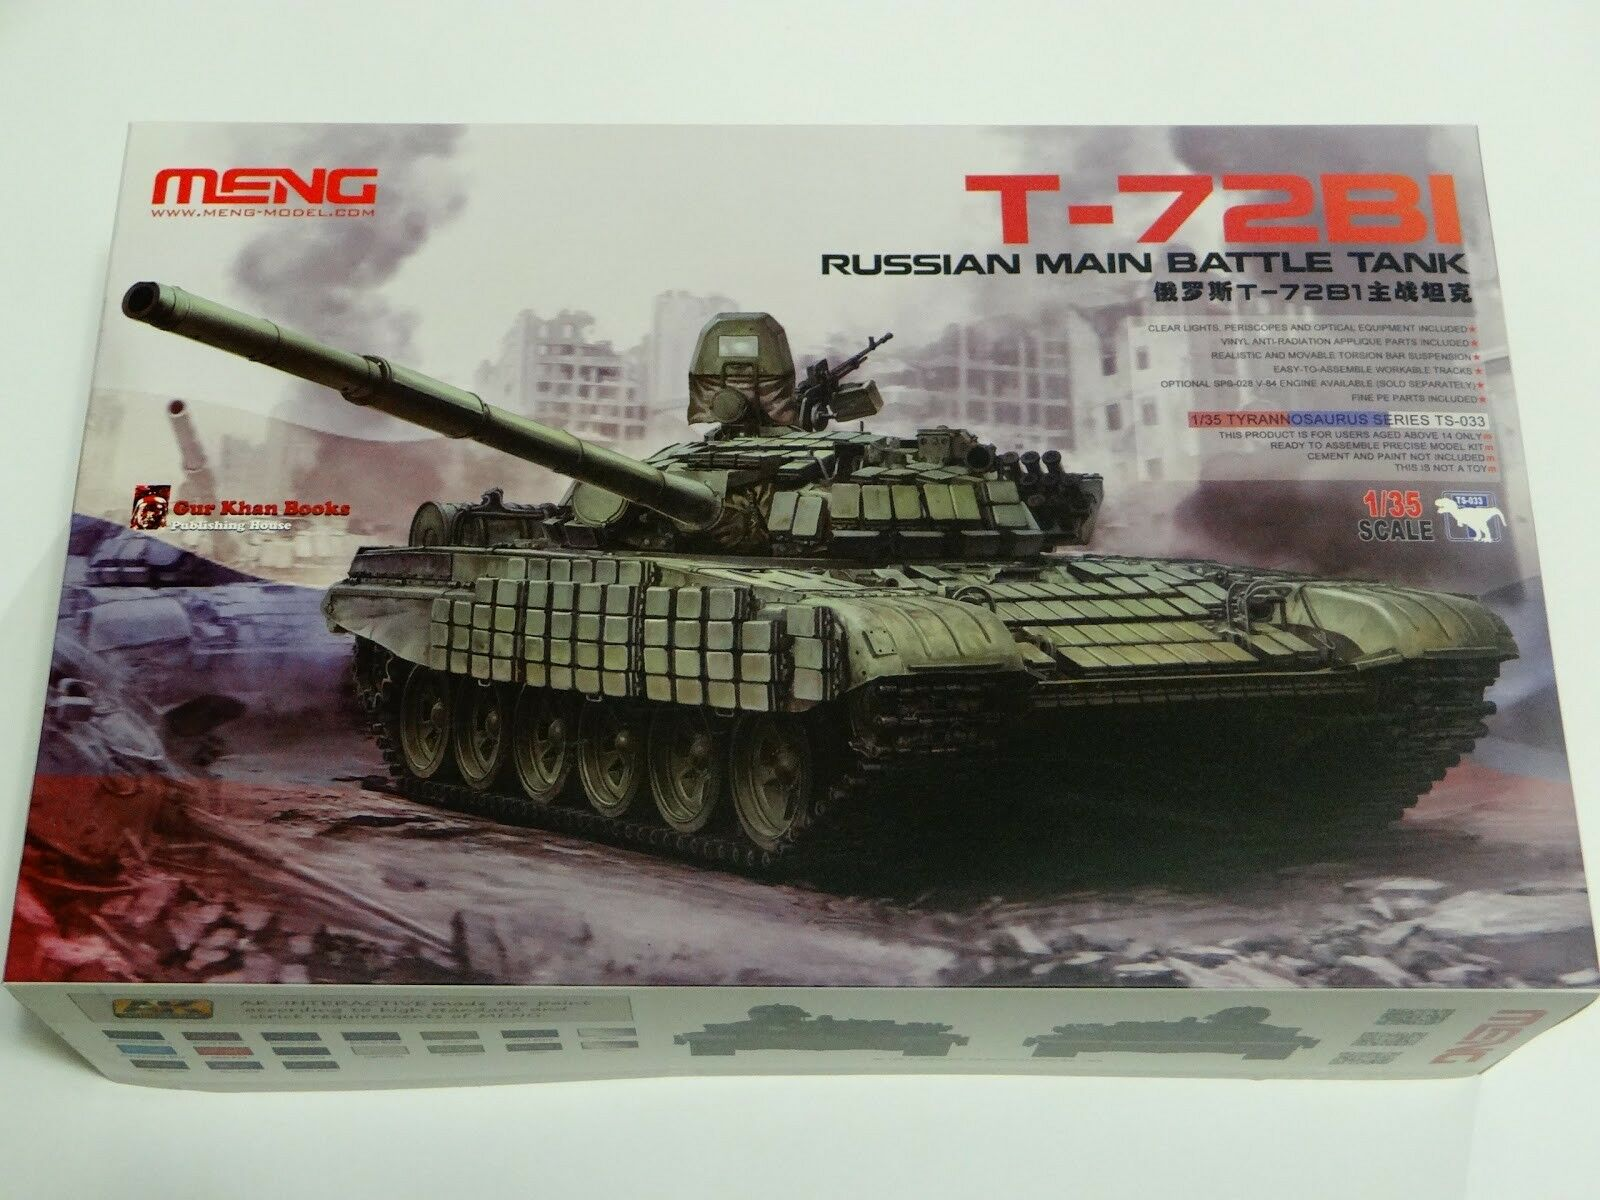 Meng Model TS-033 1 35th scale T-72B1 Russian Main Battle Tank